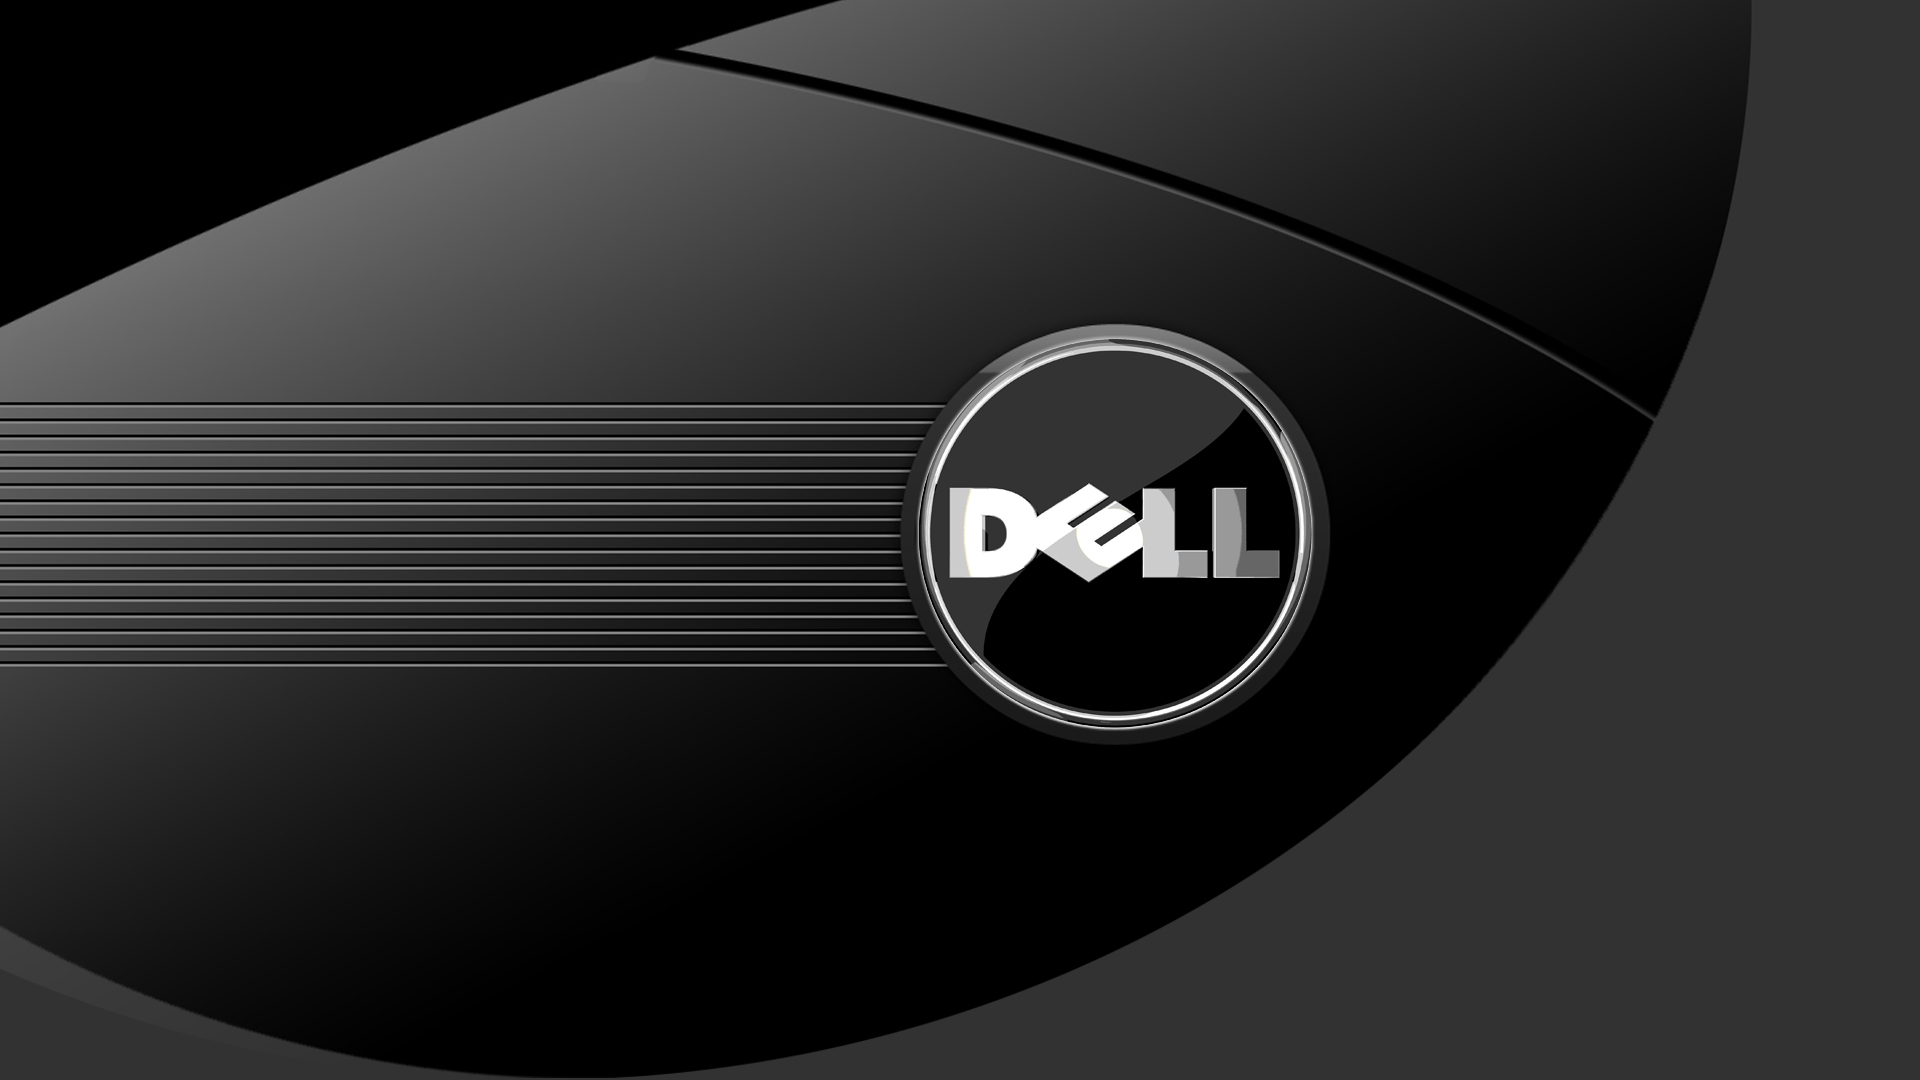 ... dell wallpapers 12 ...